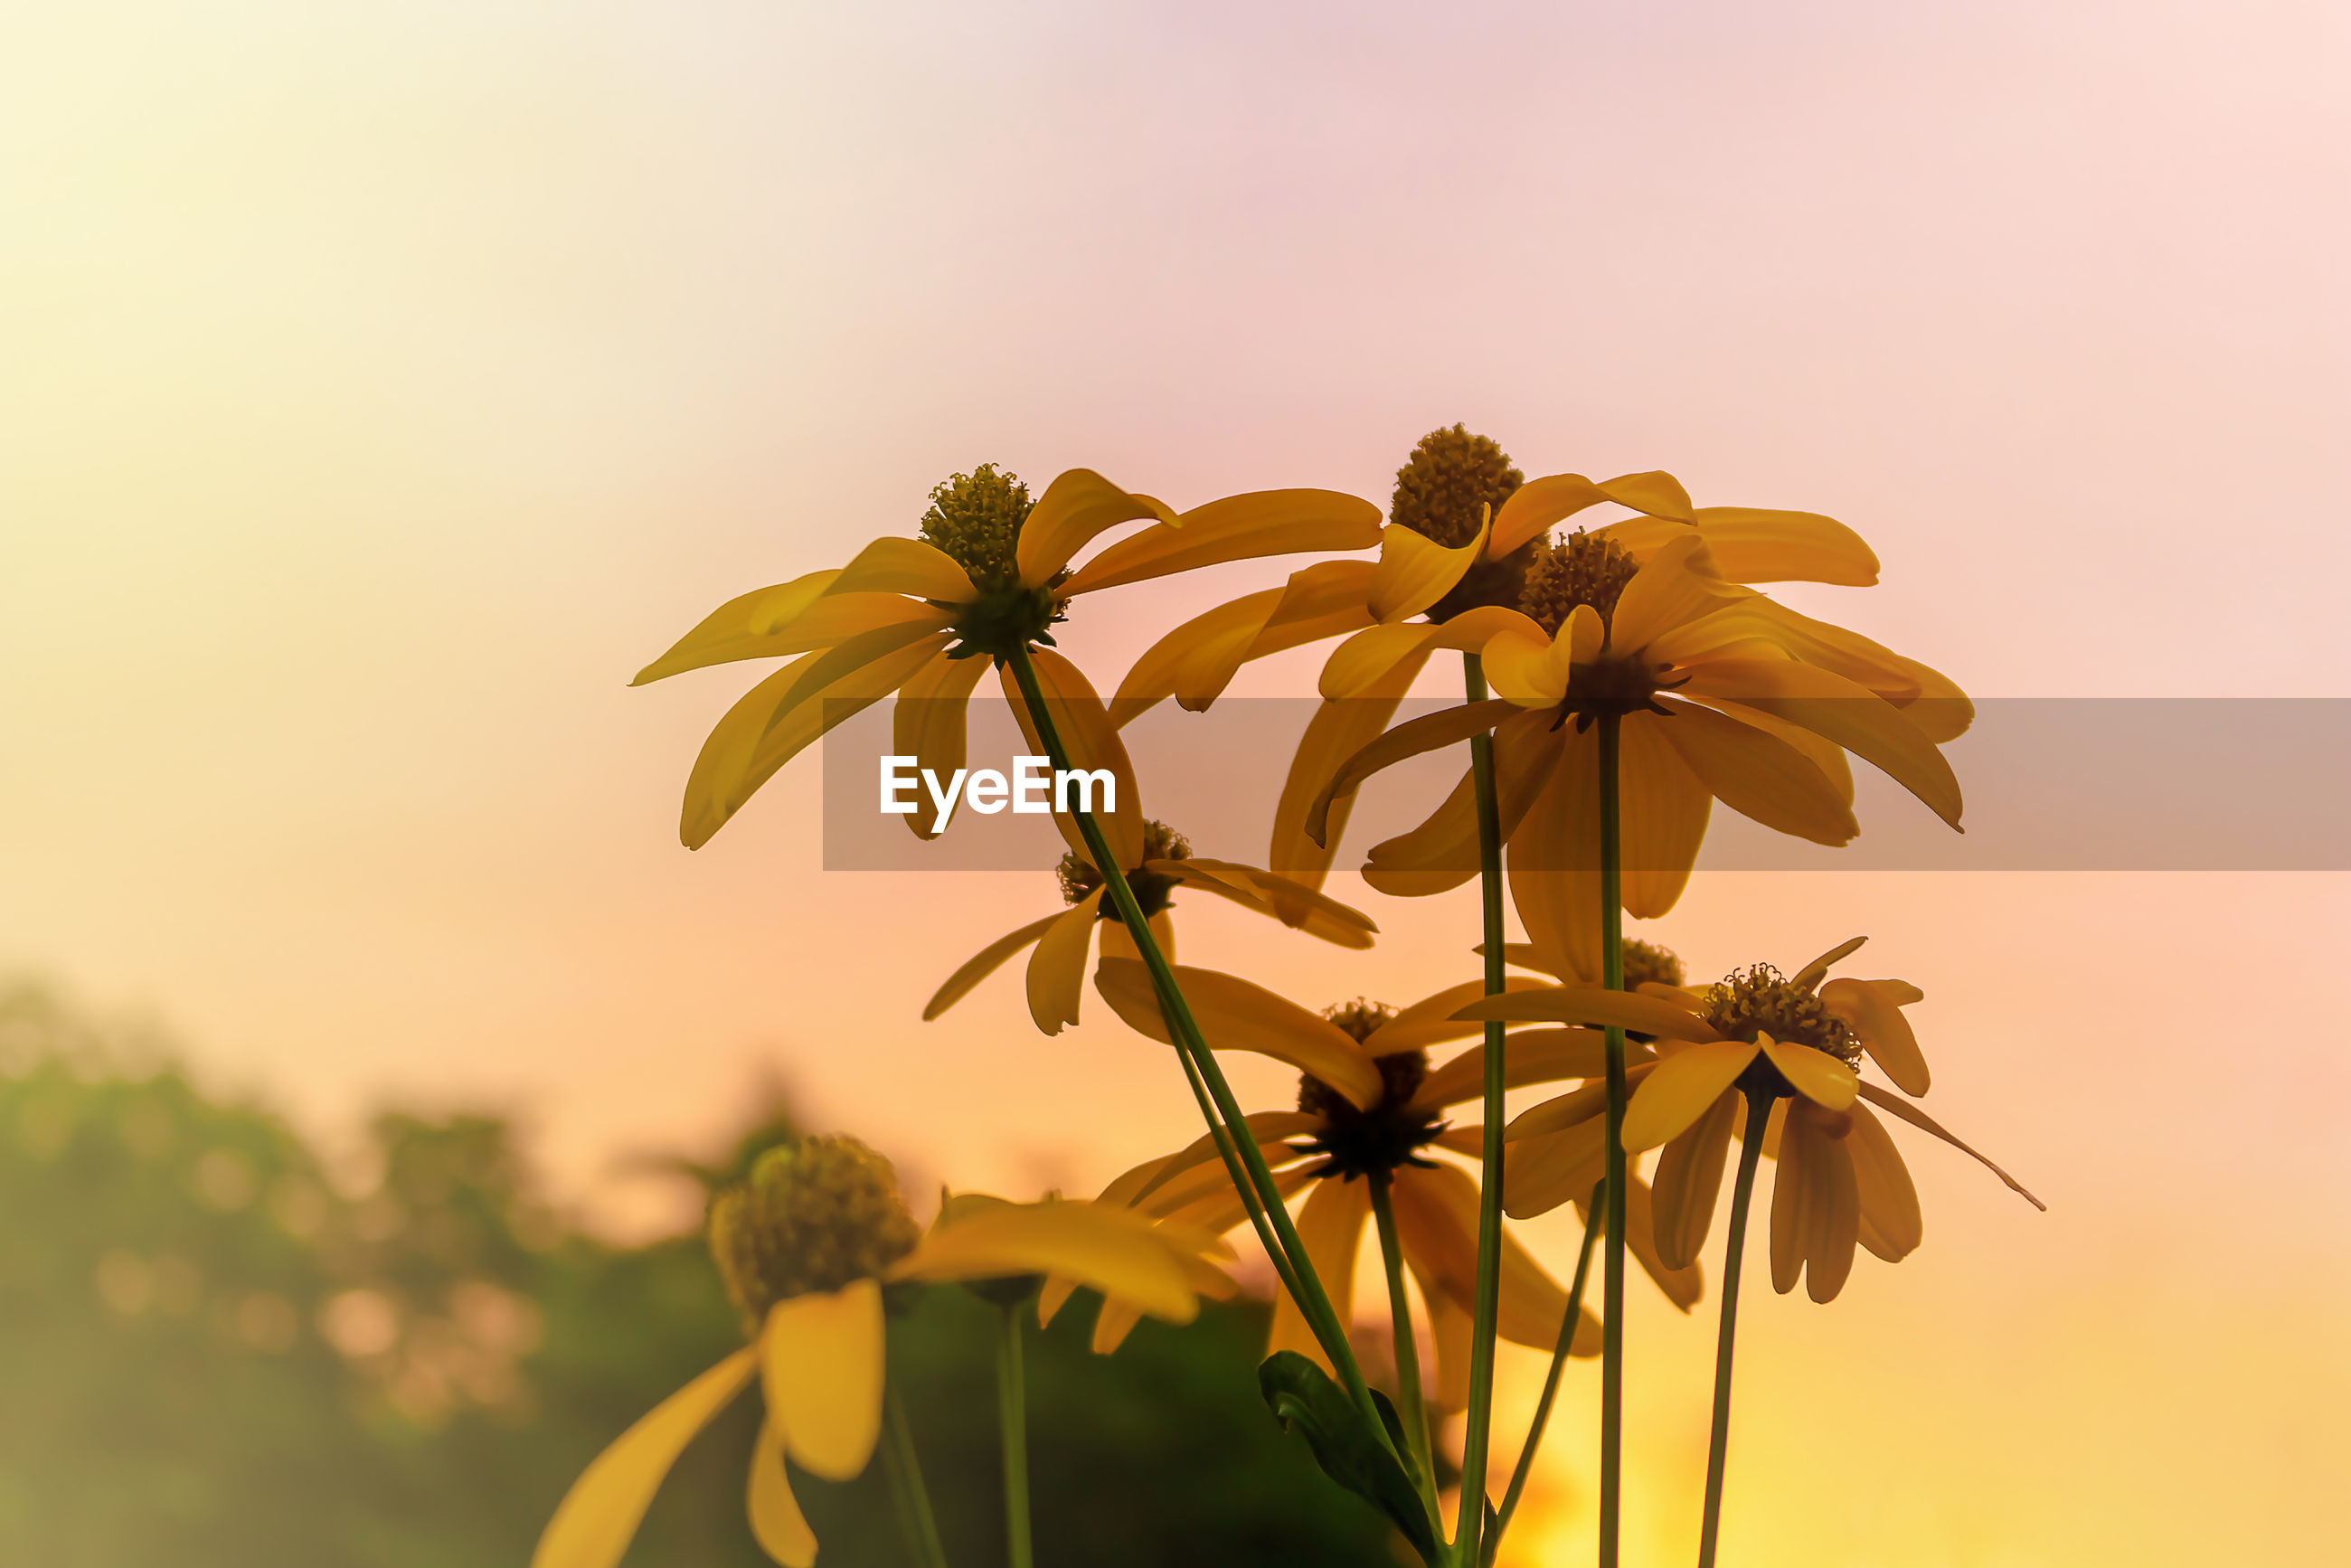 CLOSE-UP OF YELLOW FLOWERING PLANT AGAINST SKY AT SUNSET